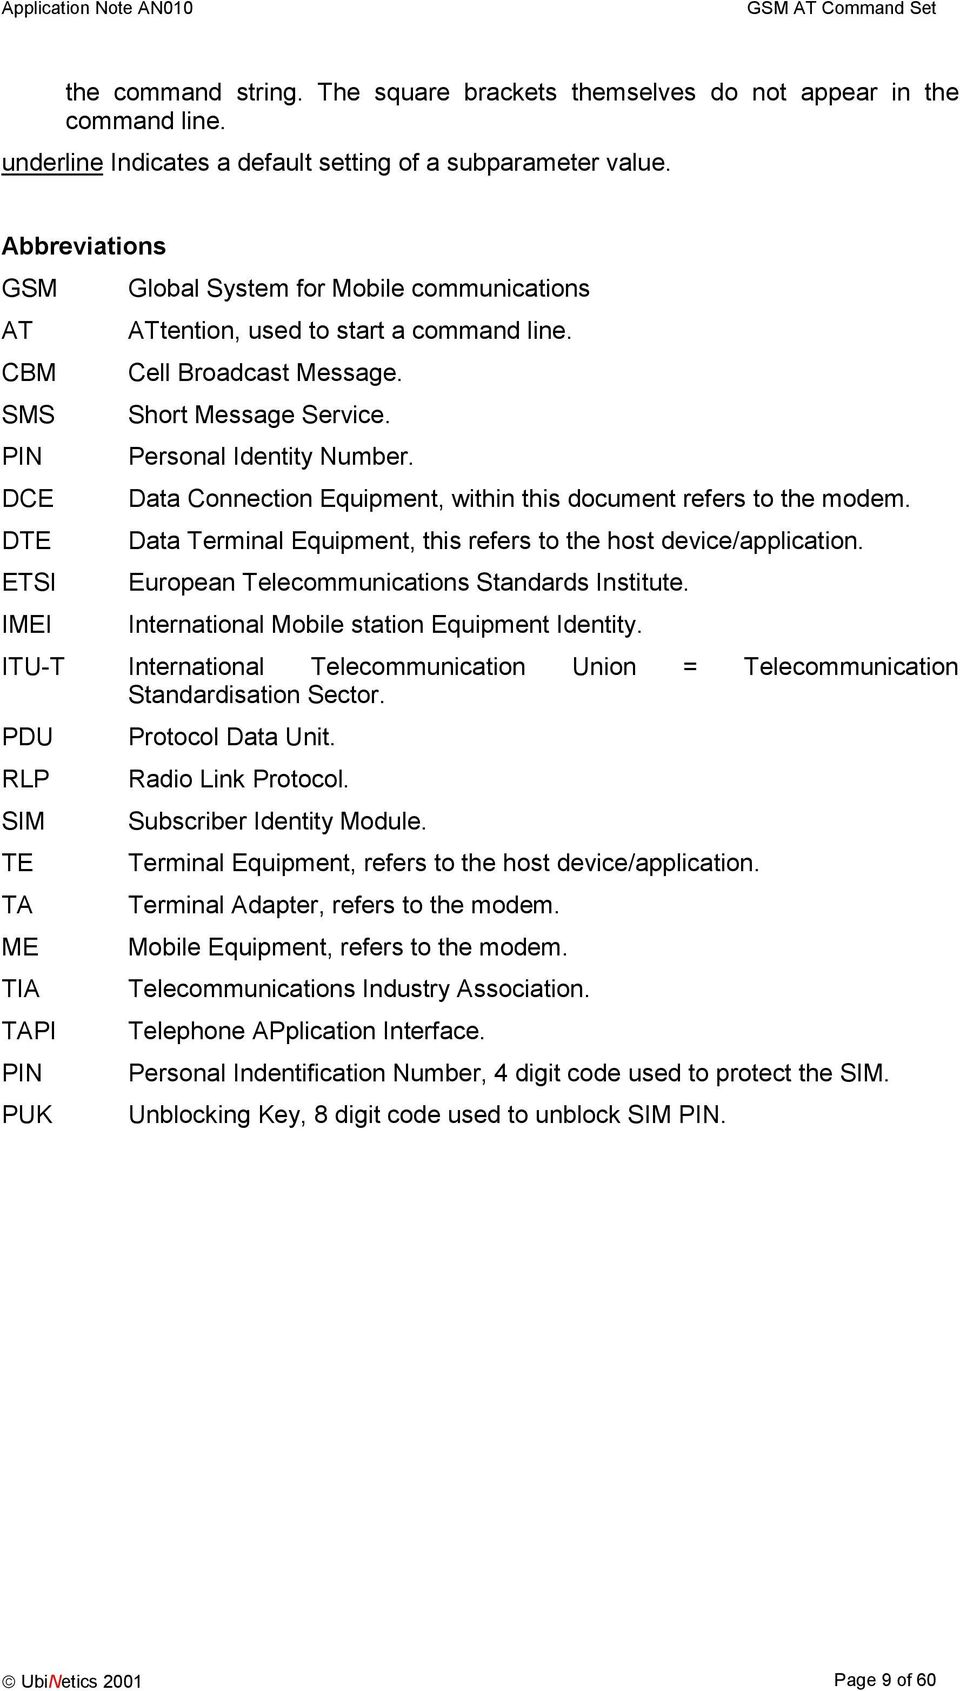 DCE Data Connection Equipment, within this document refers to the modem. DTE Data Terminal Equipment, this refers to the host device/application. ETSI European Telecommunications Standards Institute.